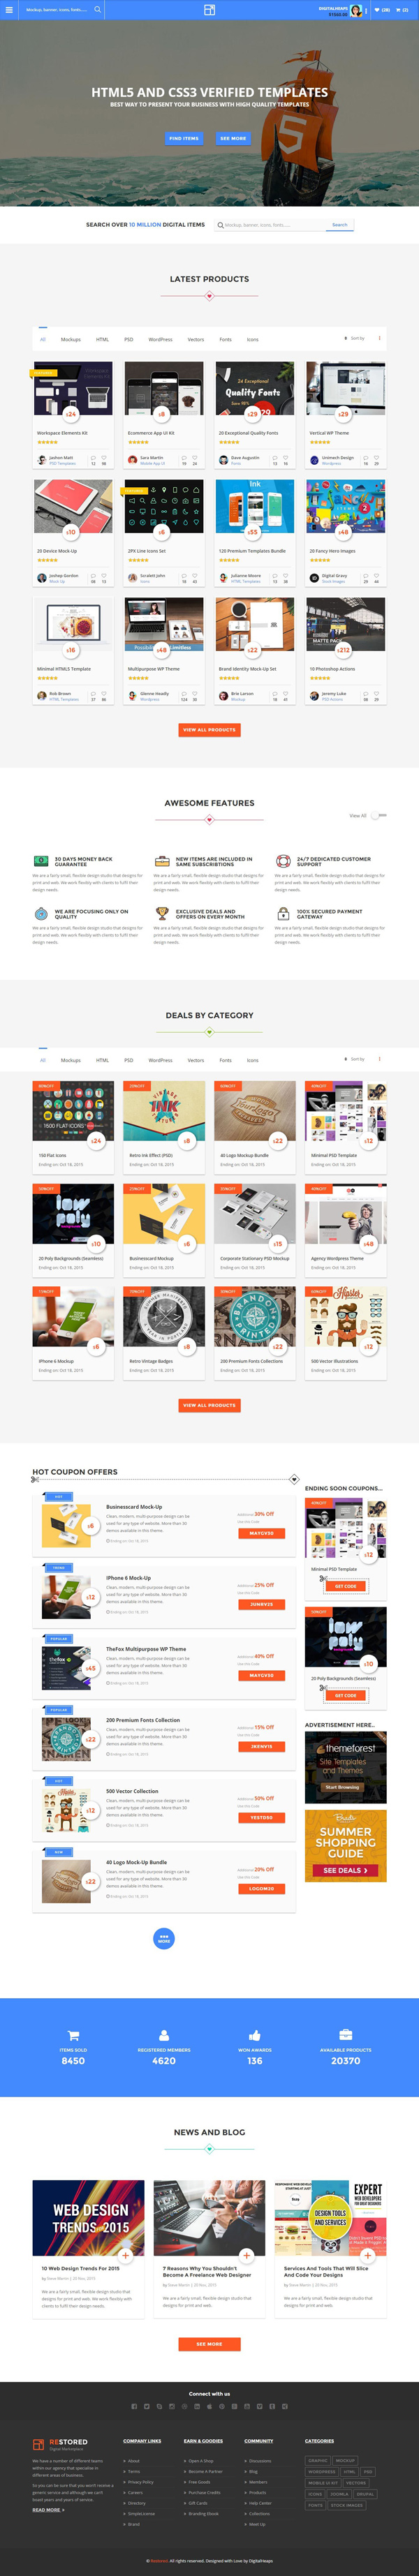 Restored - Market Place,Coupons and Deals HTML Template